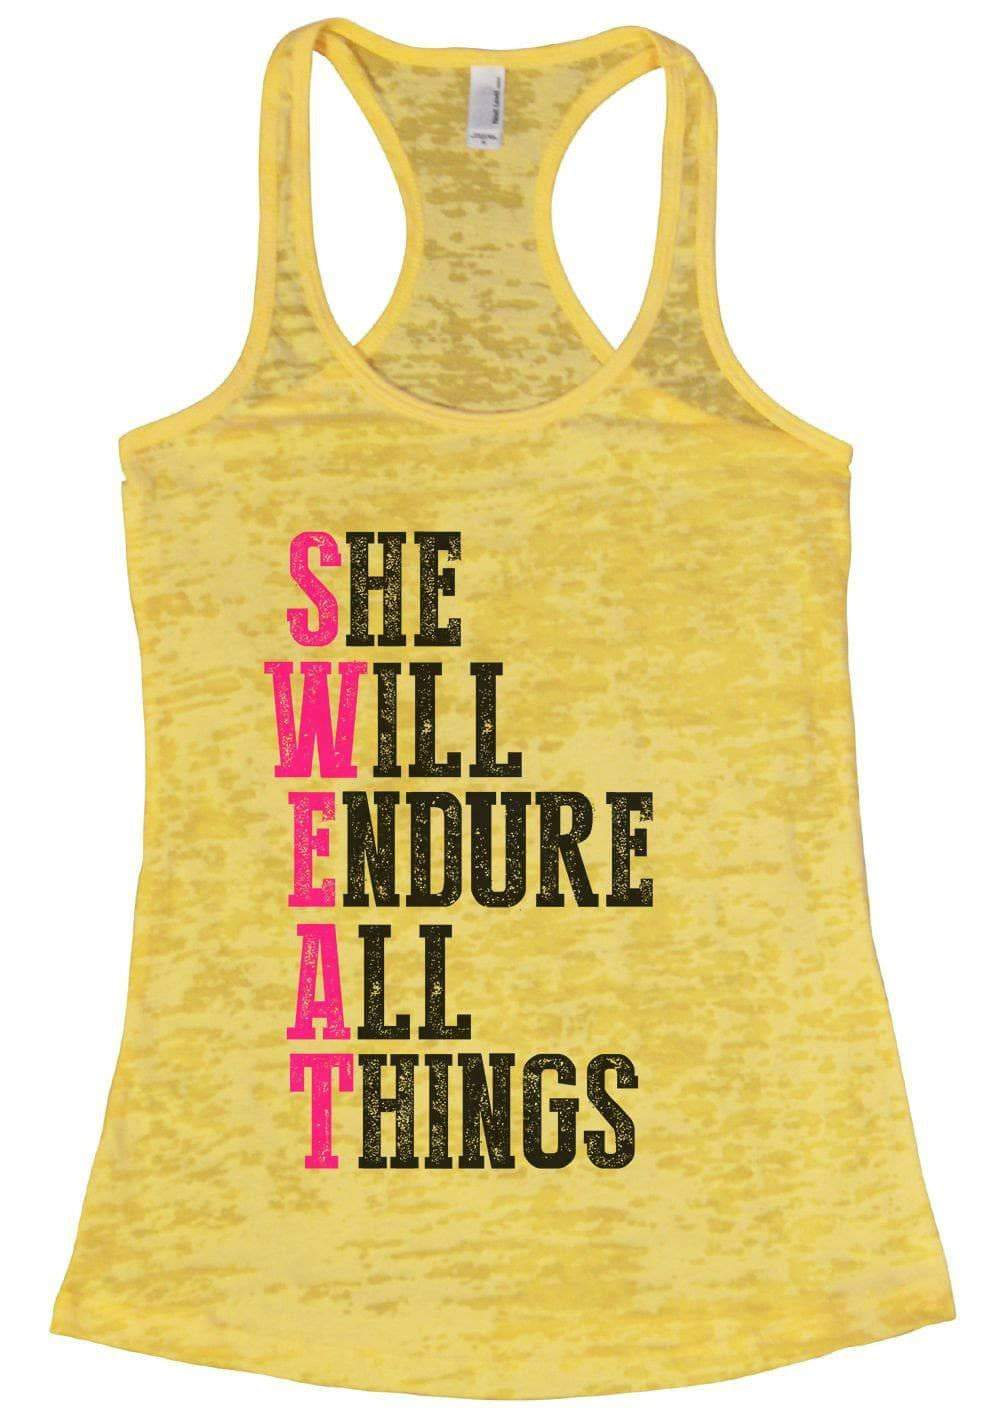 SHE WILL ENDURE ALL THINGS Burnout Tank Top By Womens Tank Tops Small Womens Tank Tops Yellow